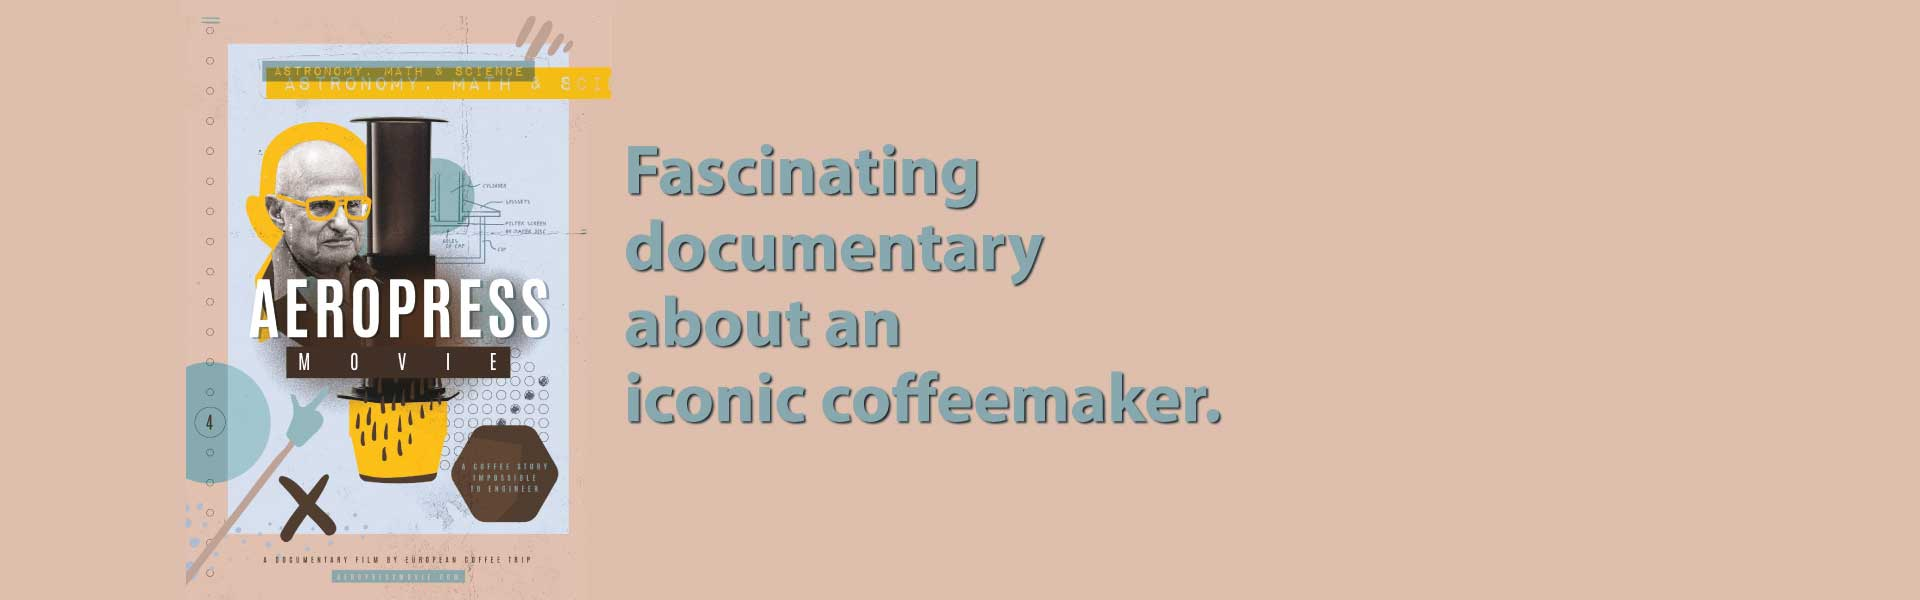 AeroPress-film Fascinating documentary about an iconic coffeemaker. Image of the inventor and Aeropress